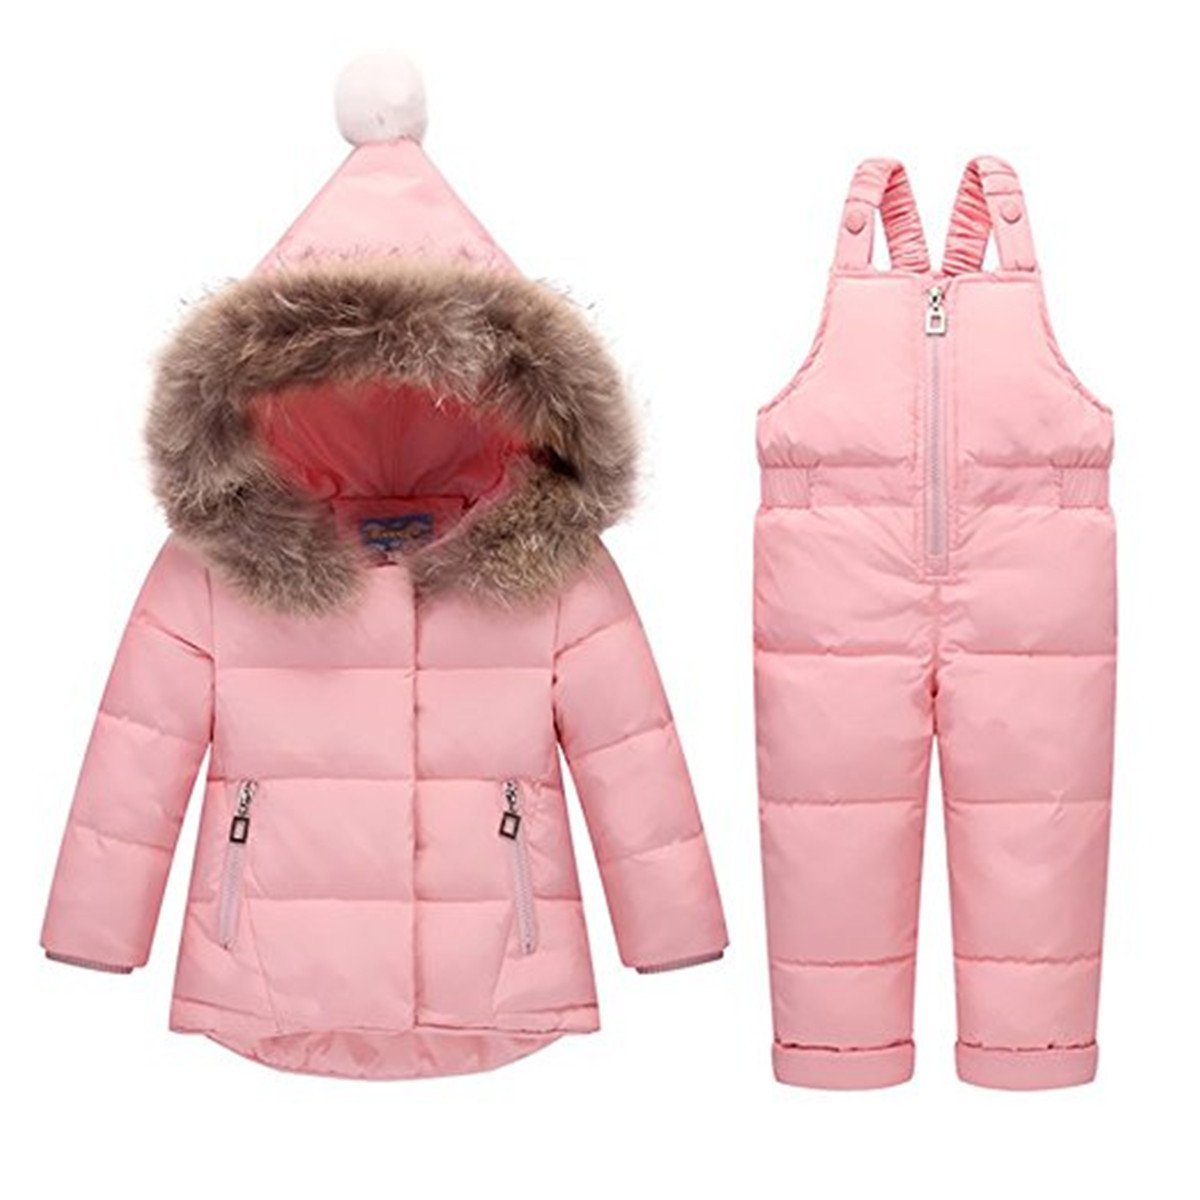 FAIRYRAIN Little Unisex Baby Two Piece Puffer Down Winter Warm Snowsuit Jacket With Snow Ski Bib Pants